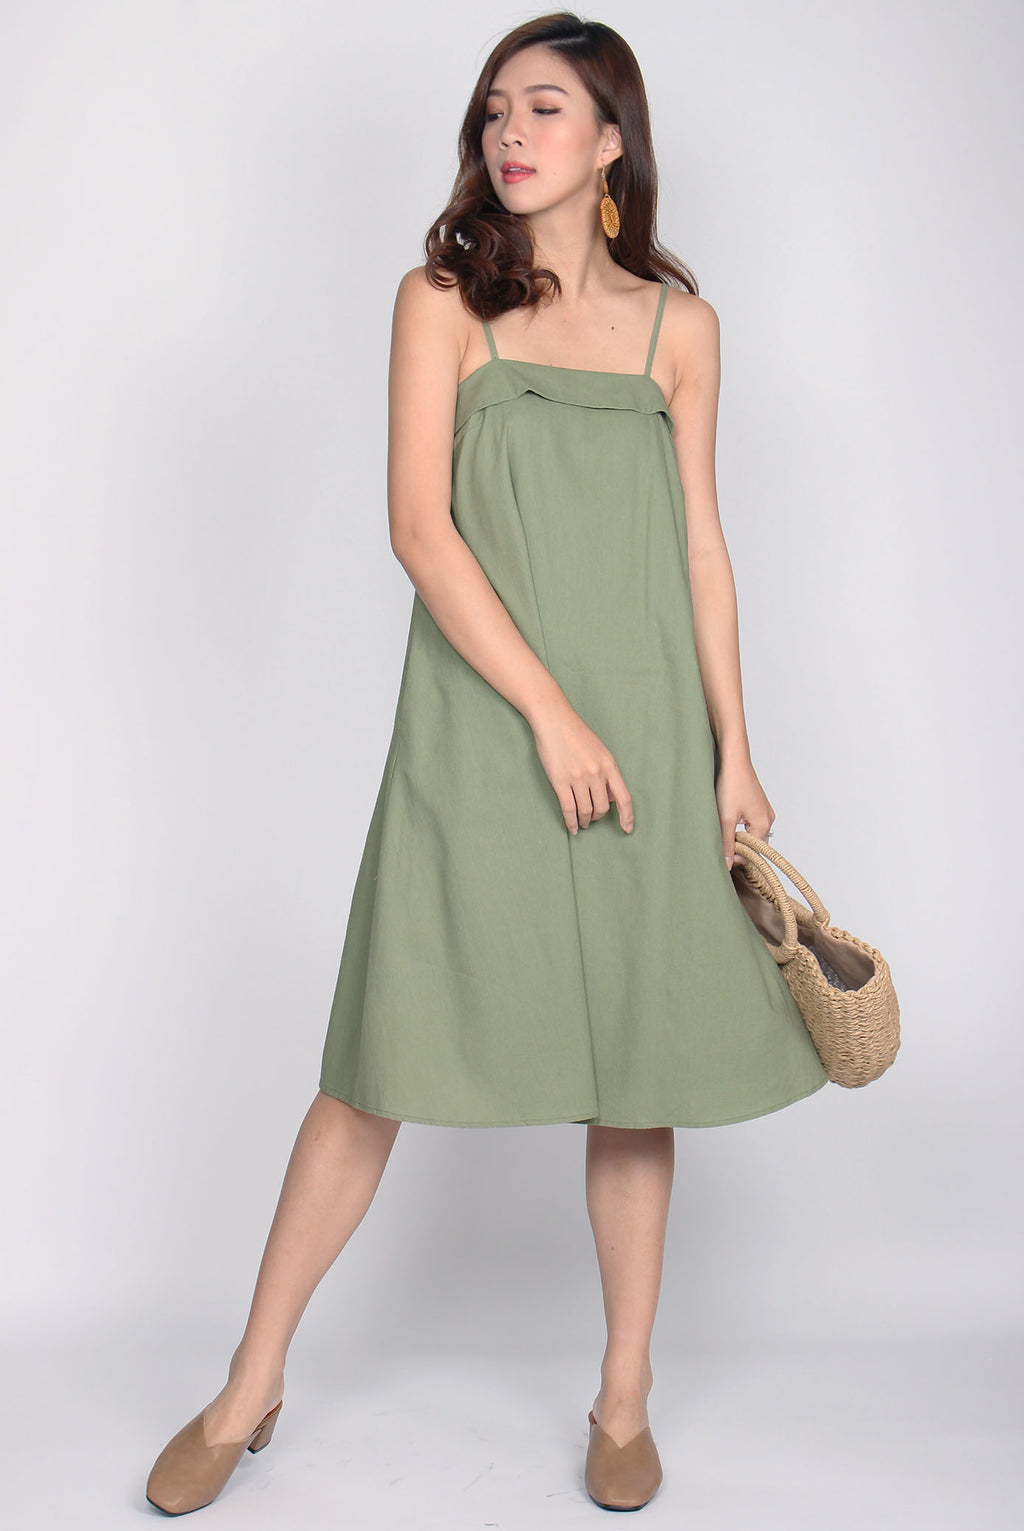 *Restock* Cydine Linen Tent Dress In Green